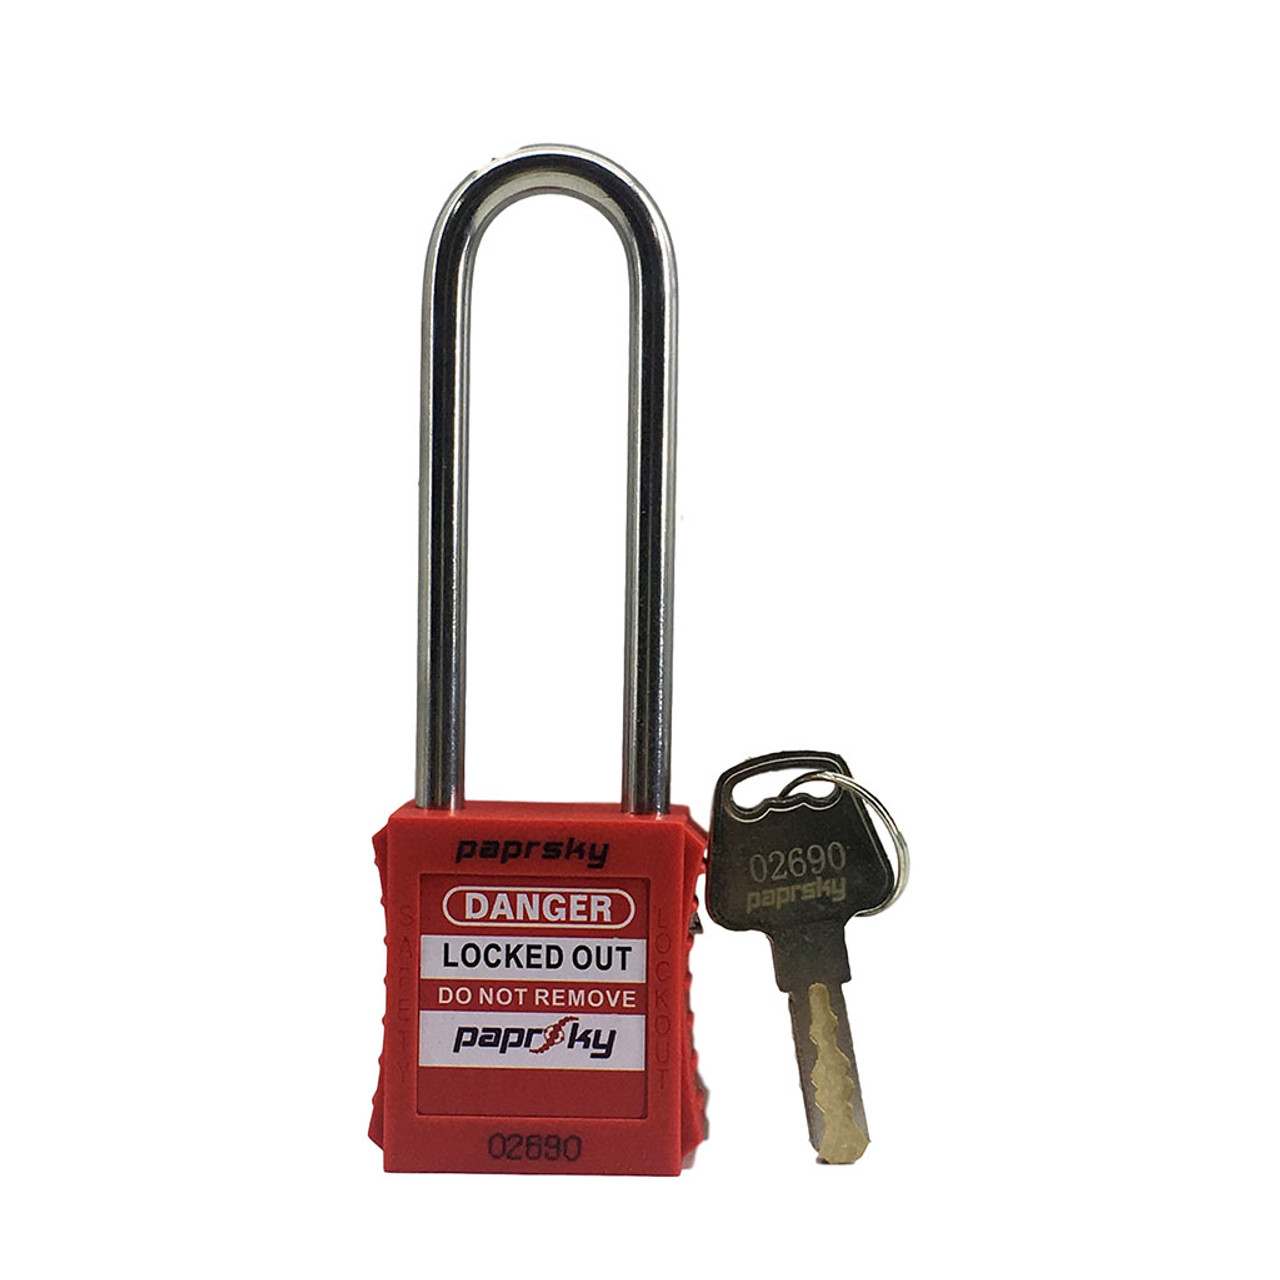 Lockout Padlock Red locks PS-LOTO-PPR-76 long shackle steel